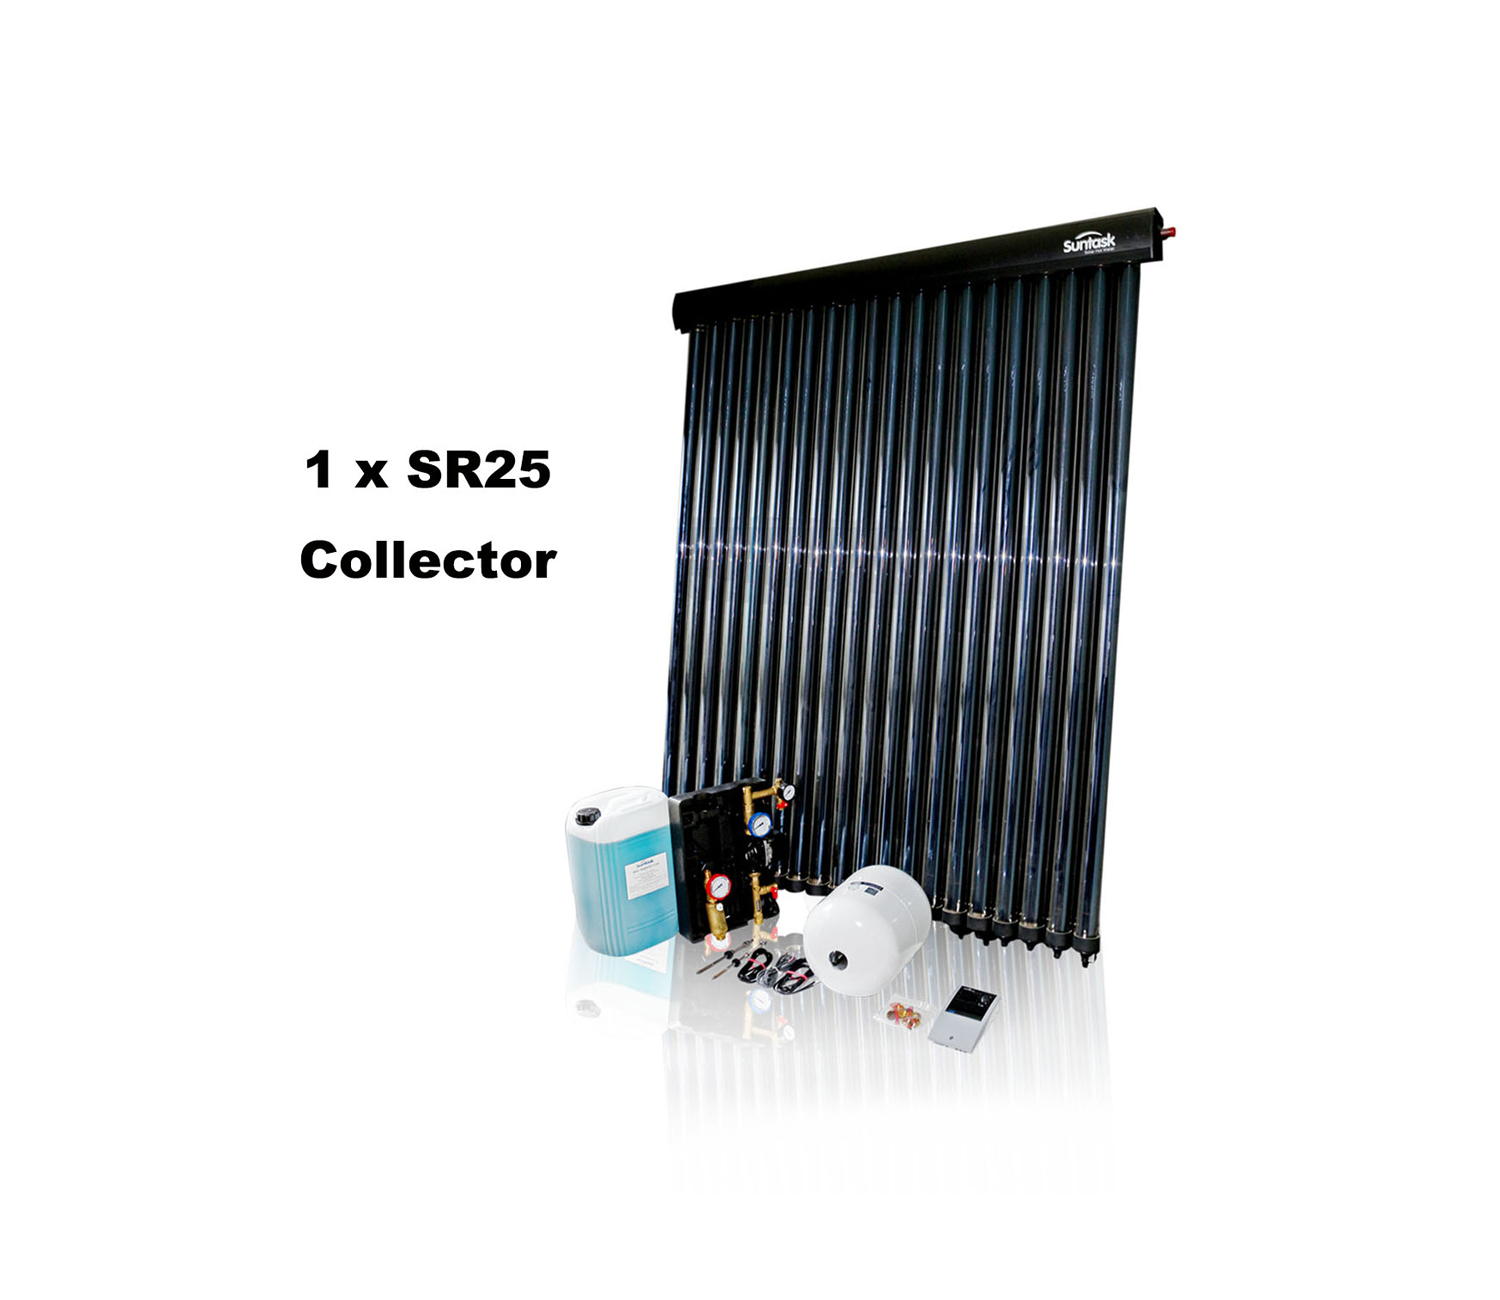 Suntask_full_Solar_Thermal_Kits_excluding_Cylinders_25_Tube_System_(1 x SR25_Collector).jpg